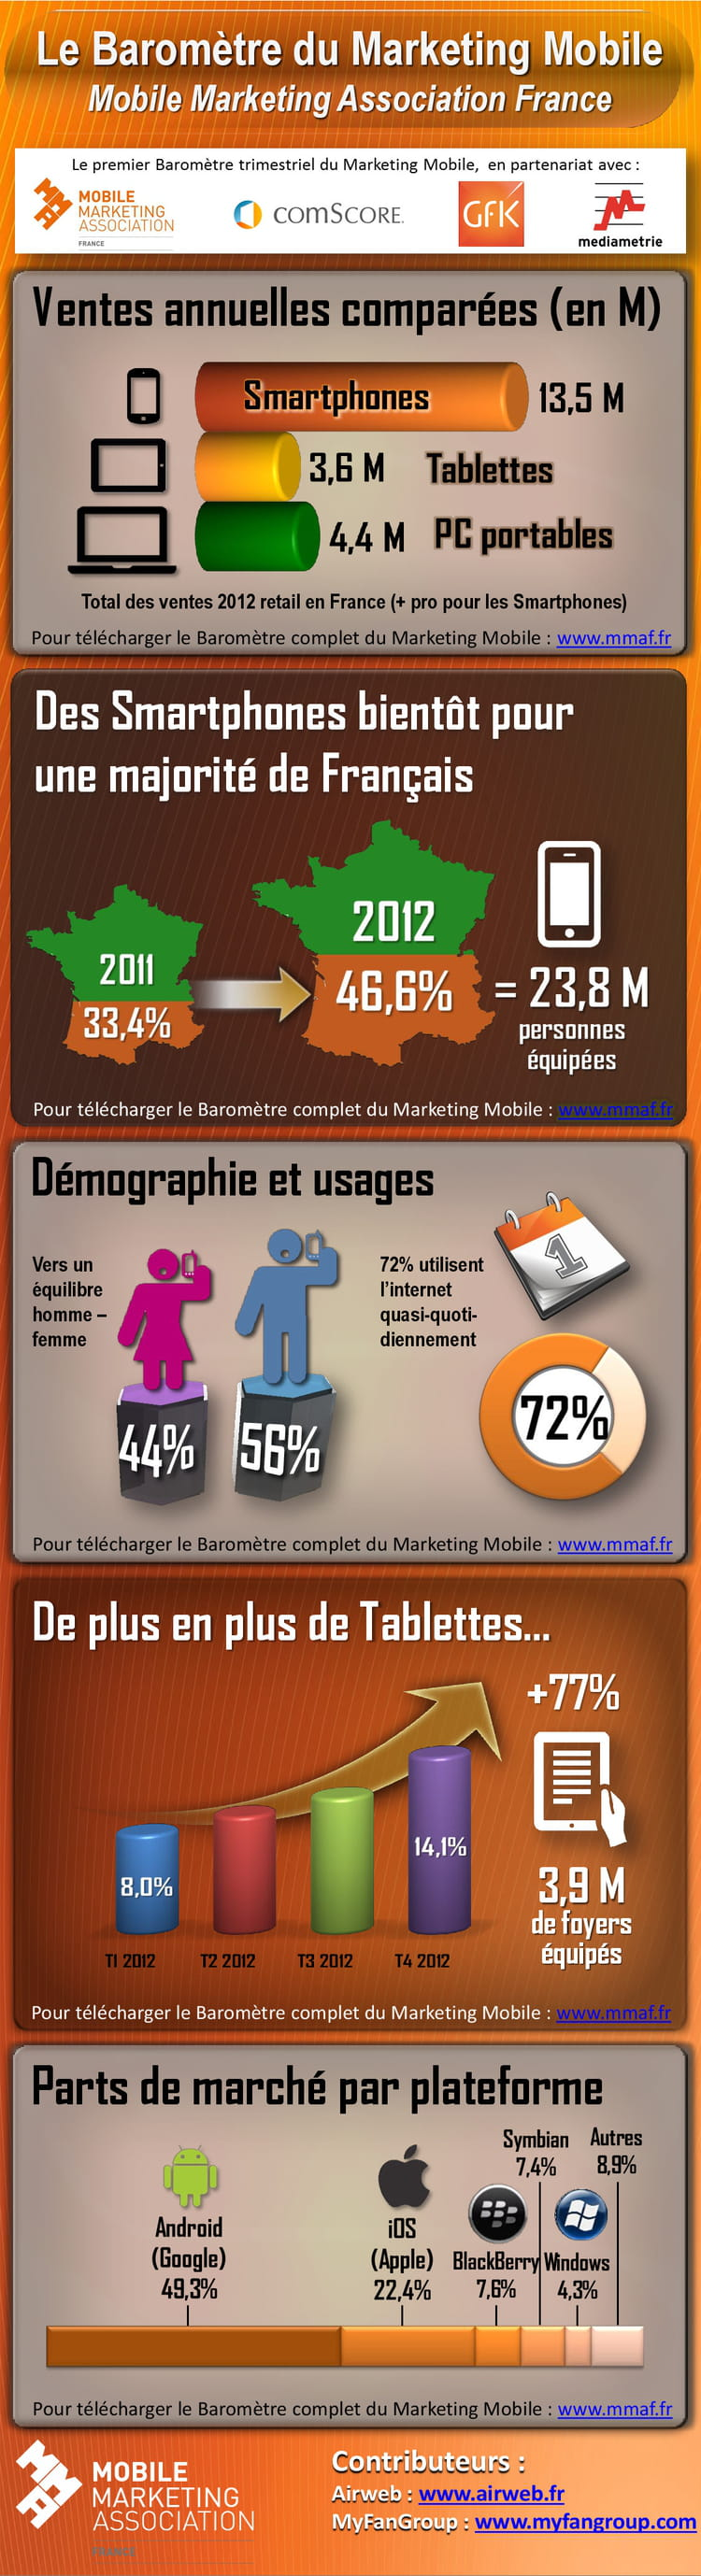 barometre marketing mobile